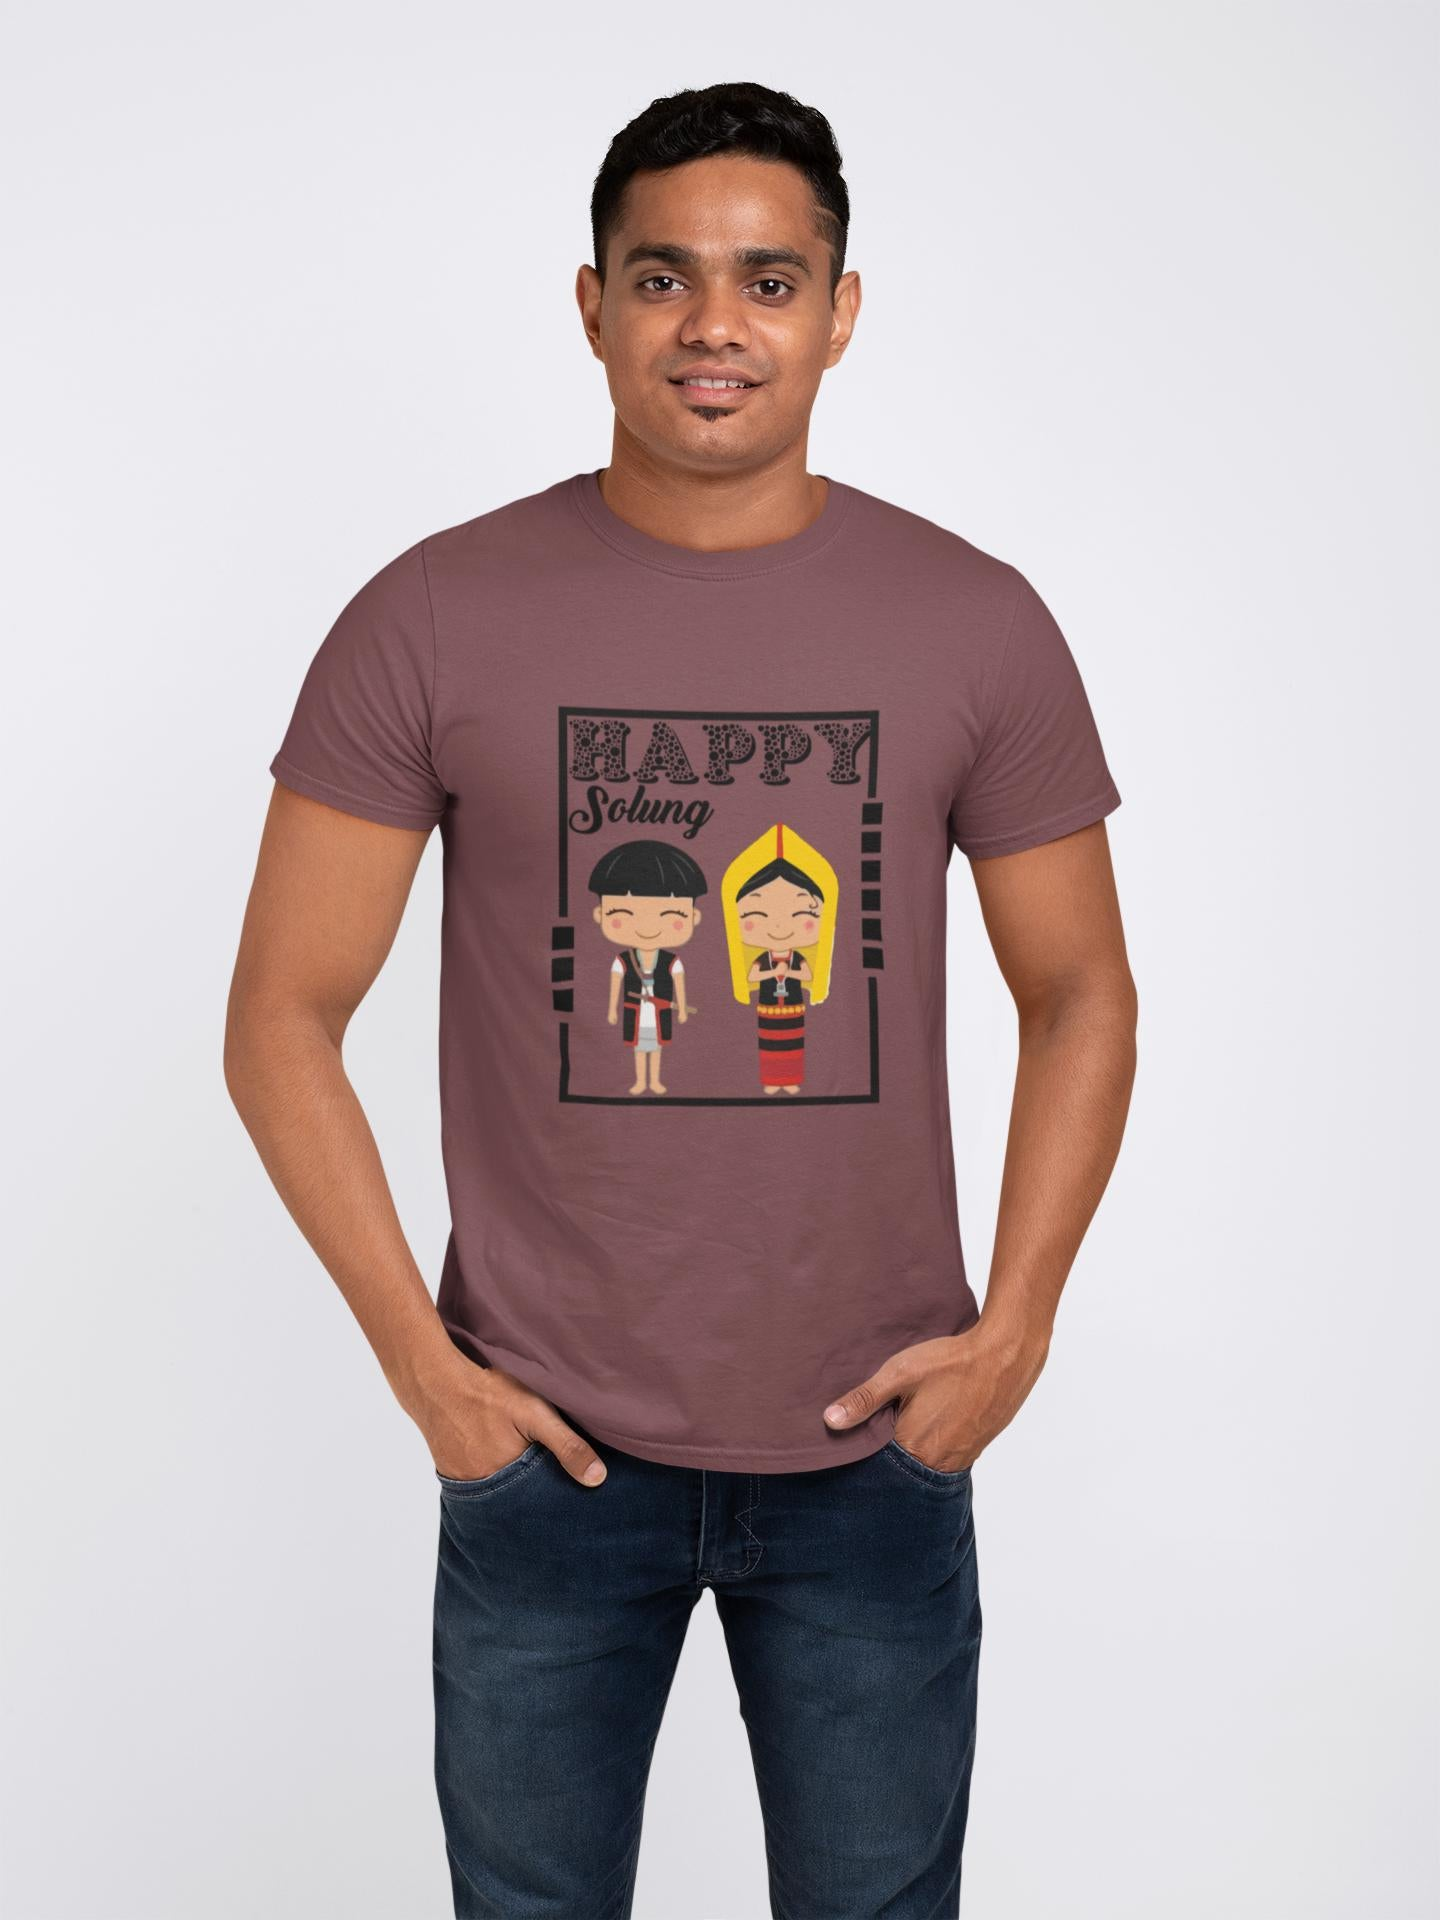 happy solung Printed T-shirt ItaMoto fashions